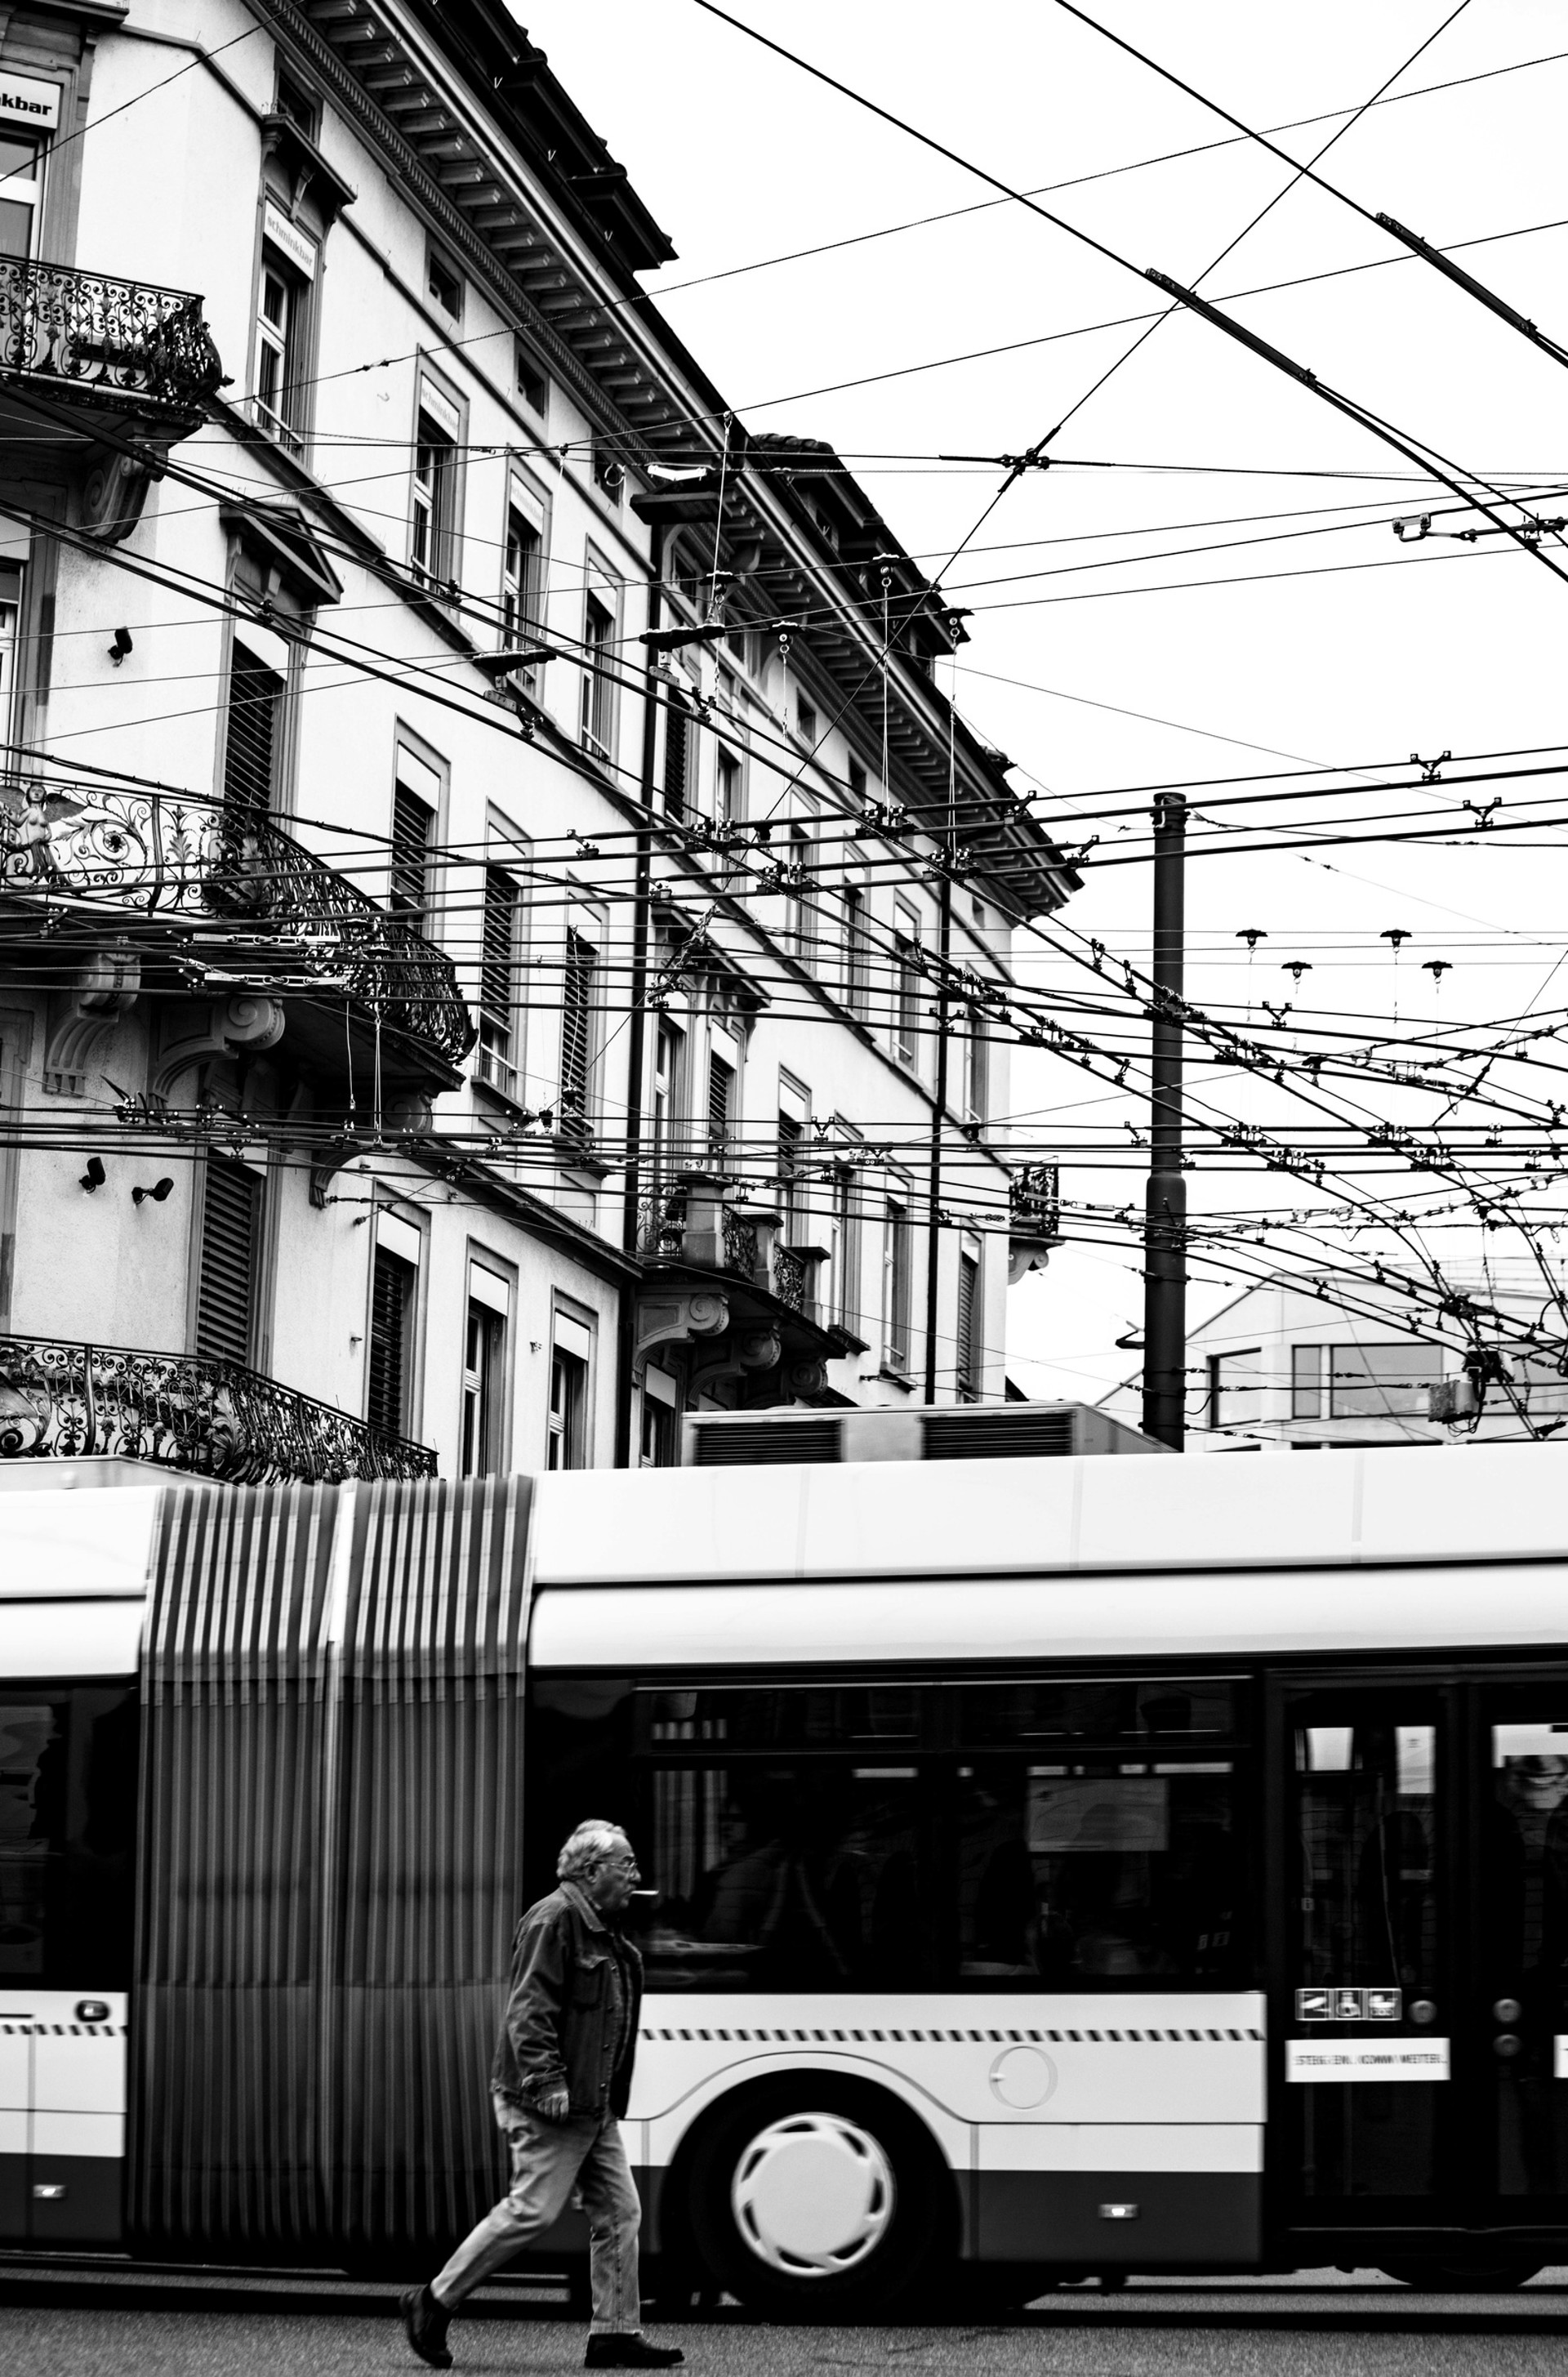 winterthur wires by Alex Nyerges